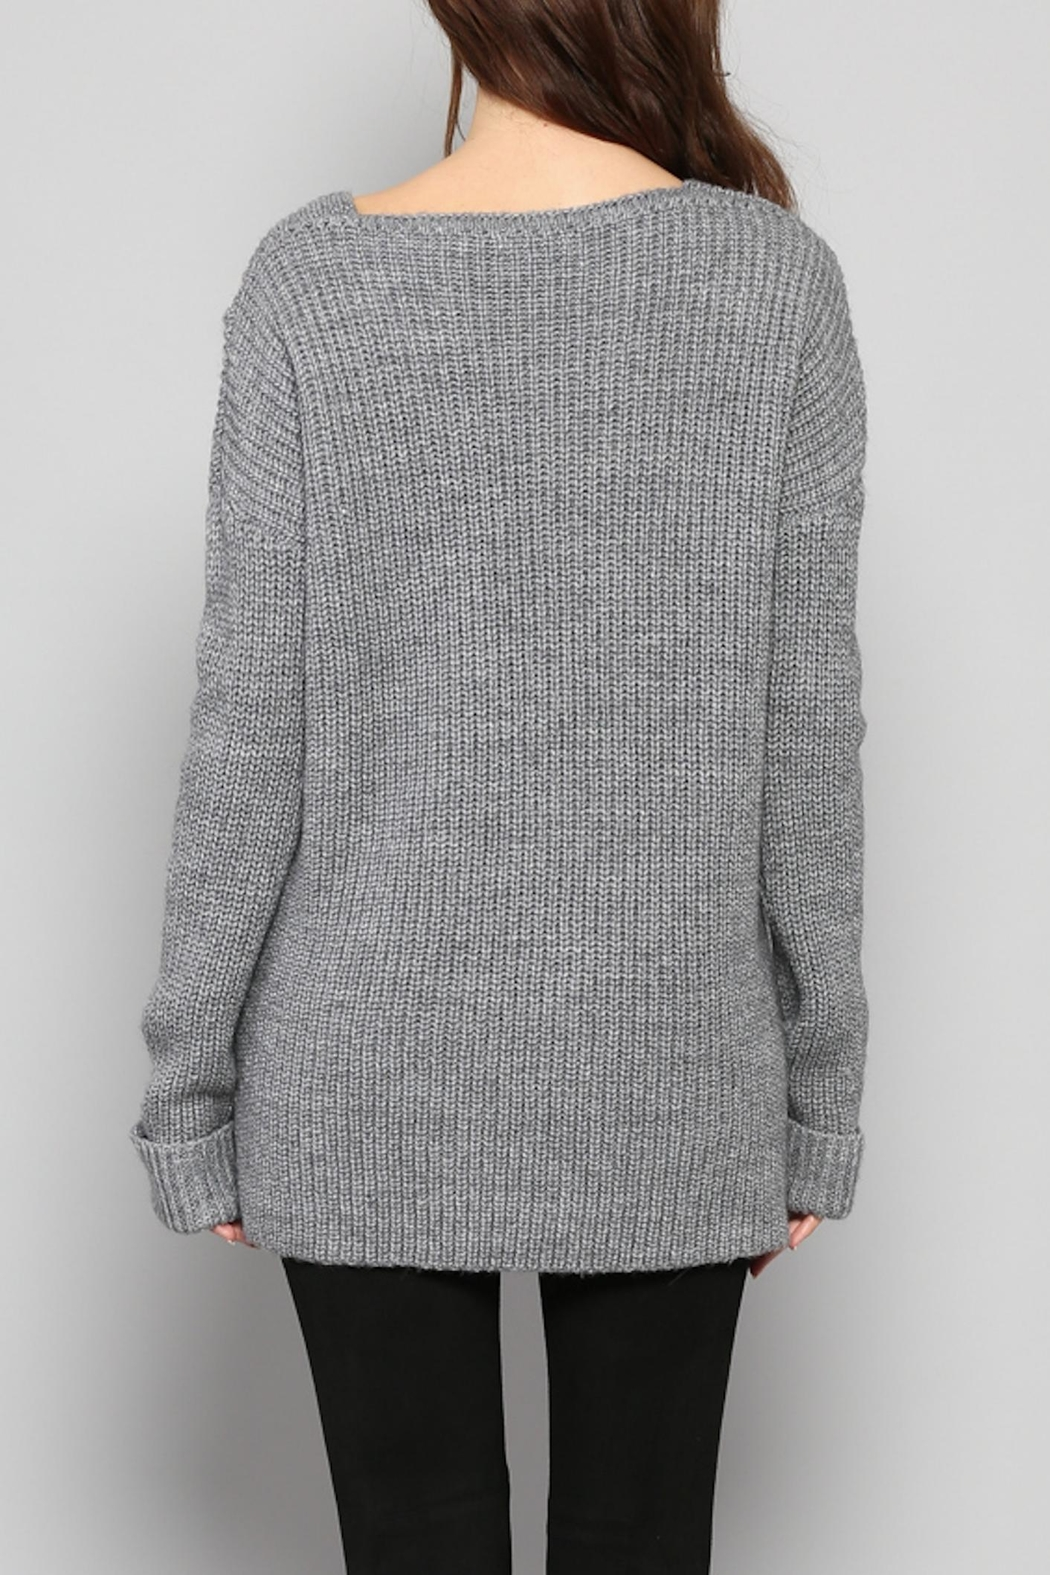 Rose & Eye Katie Cable Knit Top - Side Cropped Image